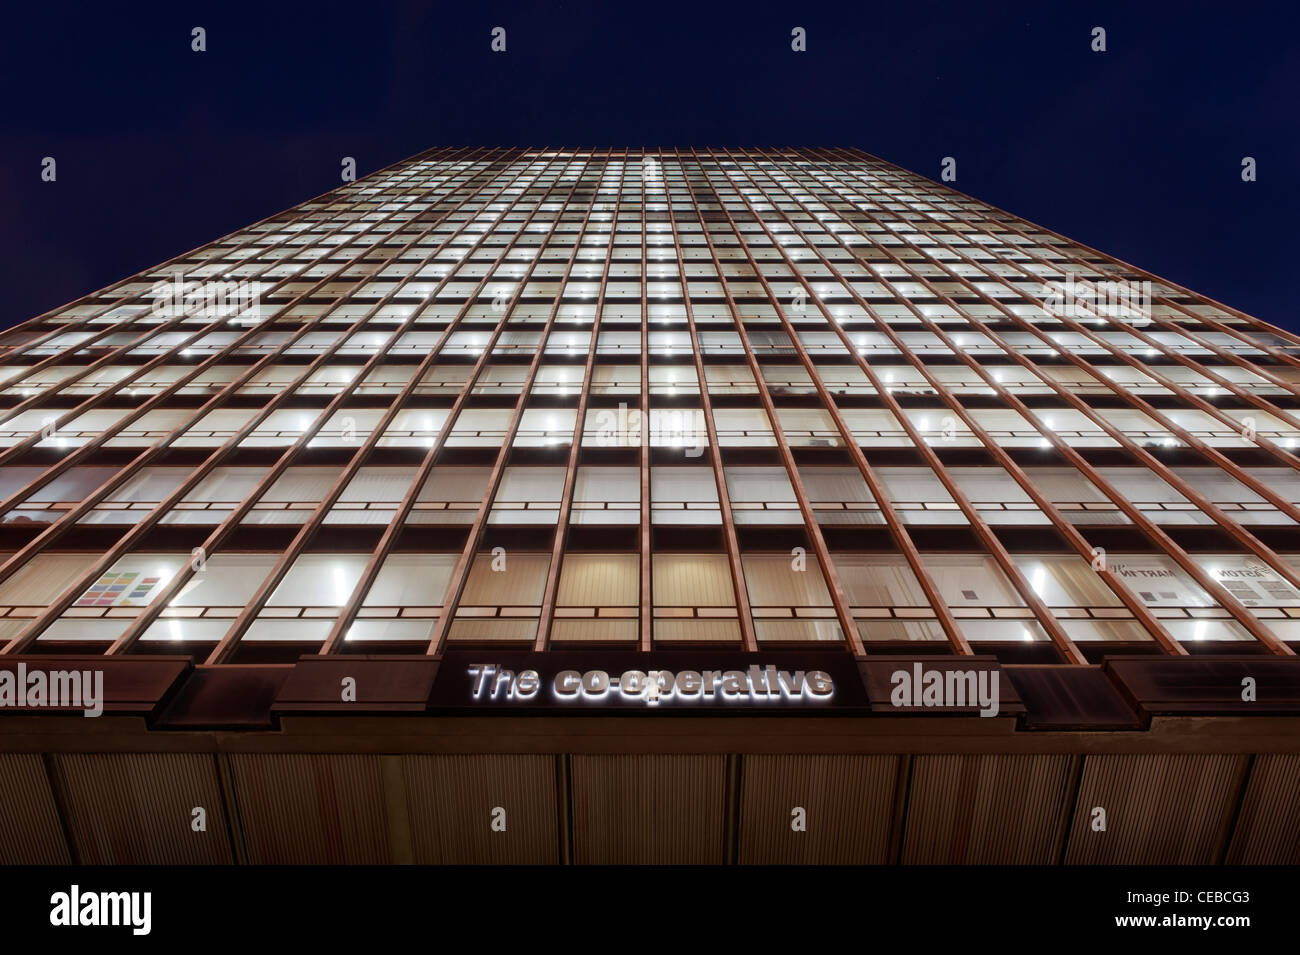 CIS Co-operative Insurance Tower located on Miller Street, Manchester, taken at night. - Stock Image